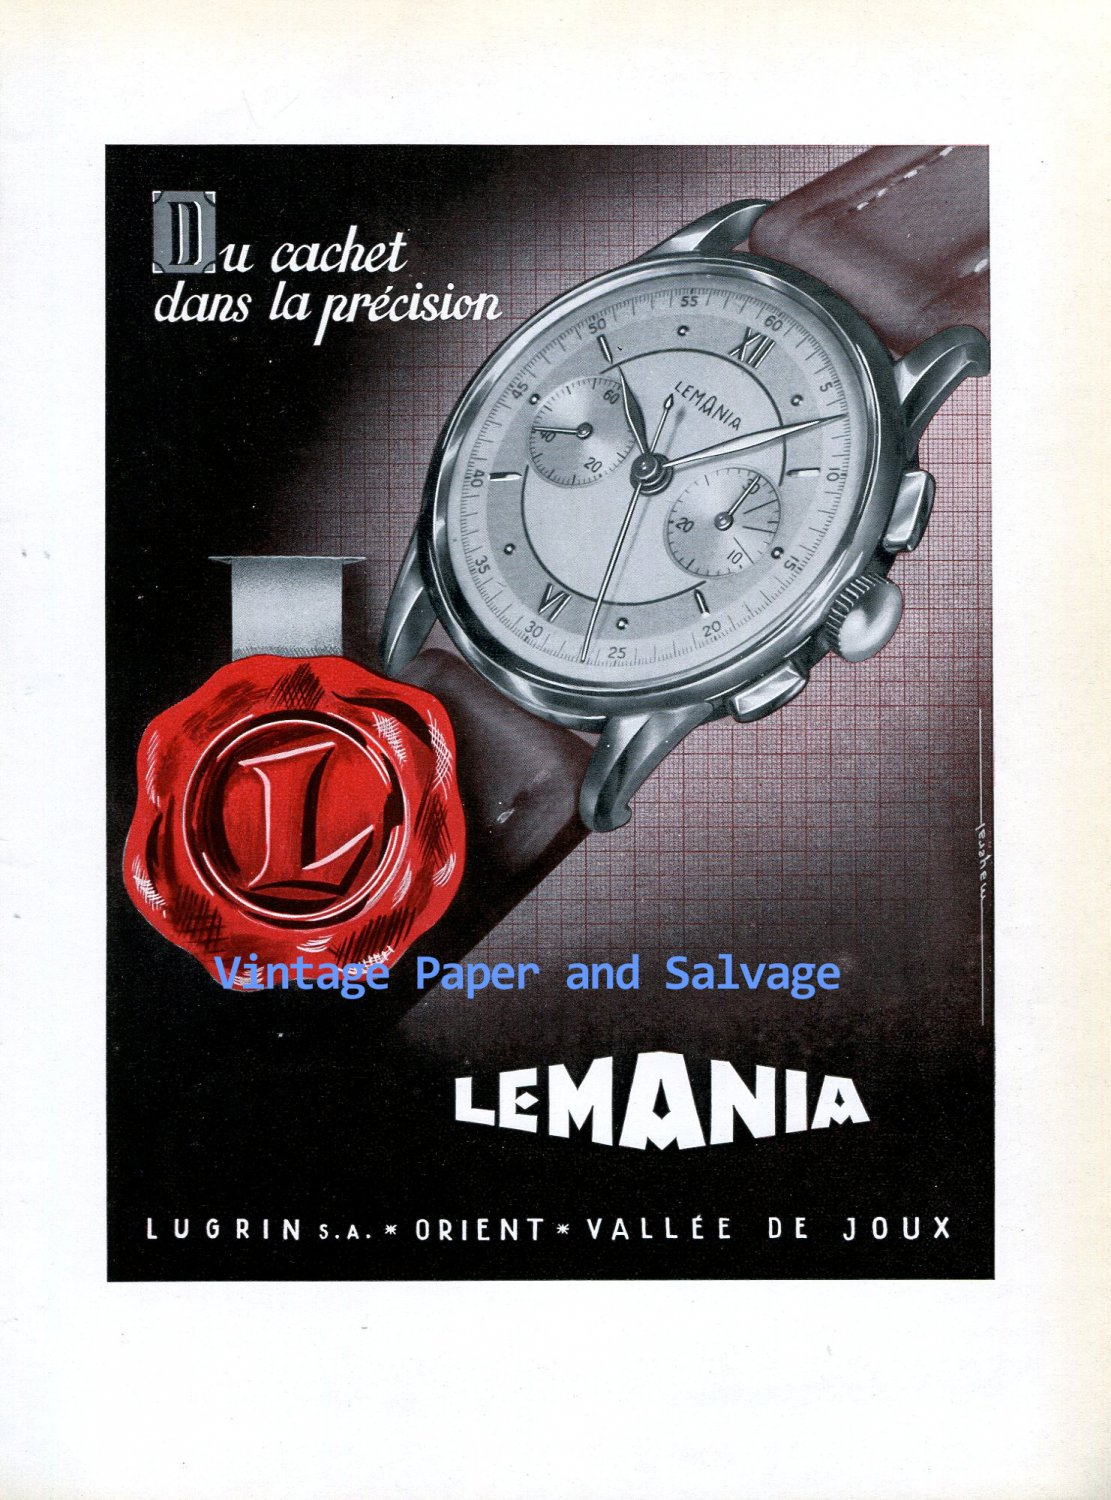 Vintage 1945 Lugrin SA Lemania Watch Company Switzerland 1940s Swiss Ad Advert Suisse